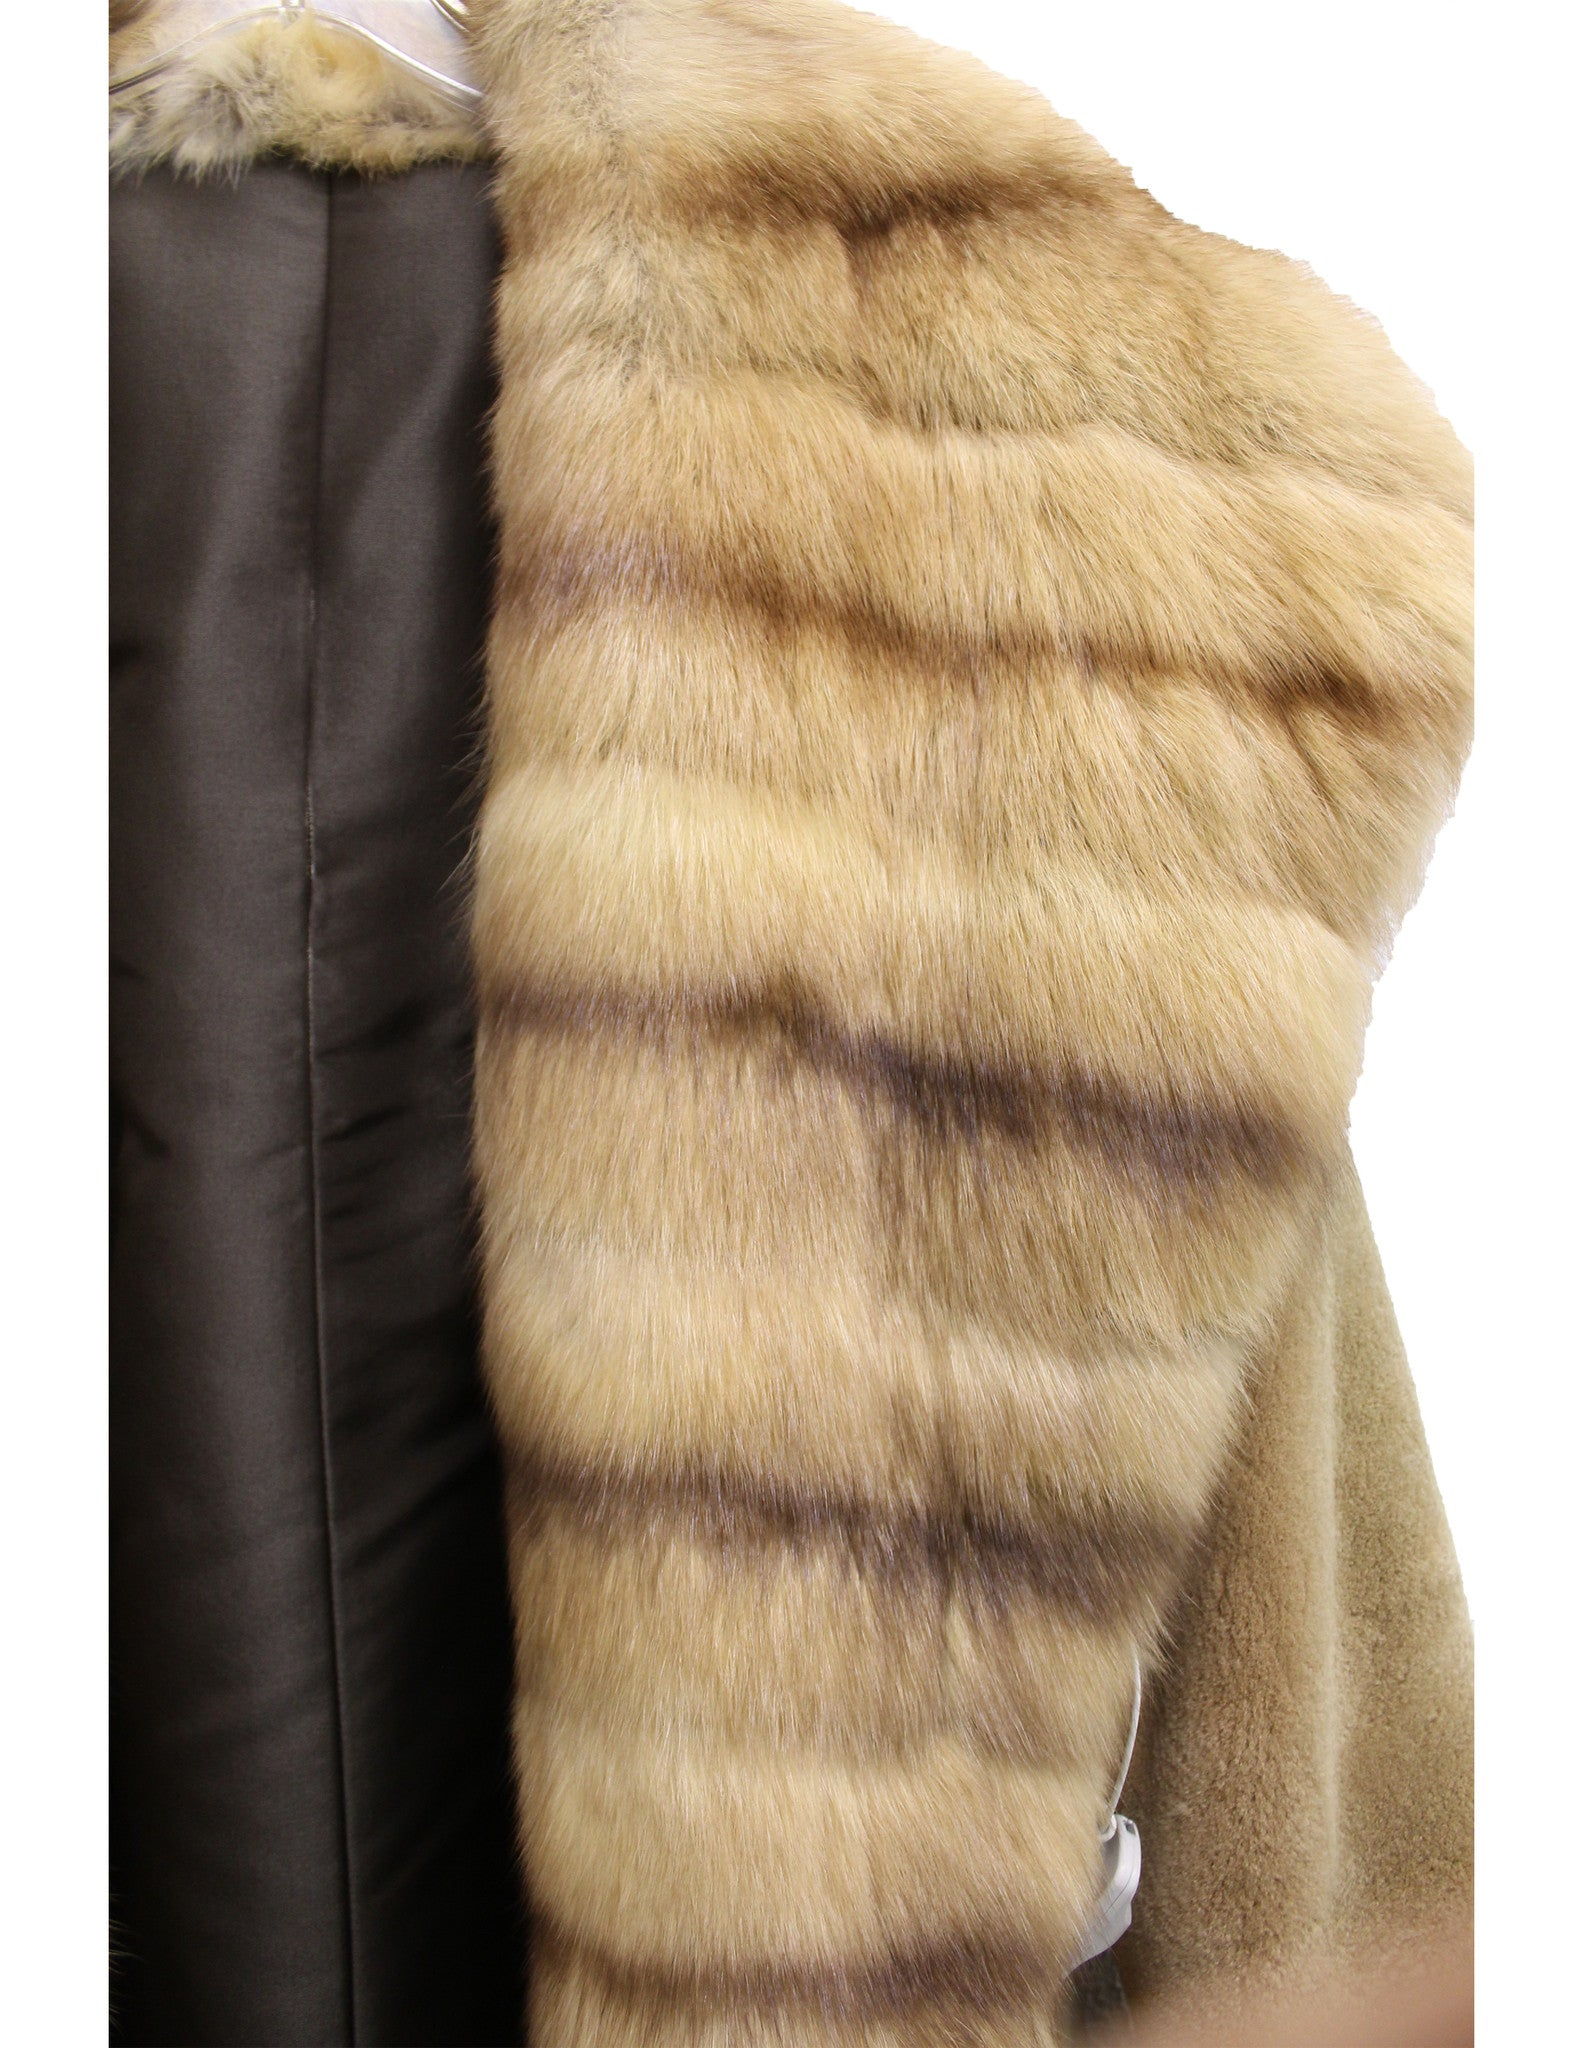 J. Mendel Sable and Beaver Fur Reversible Coat w/Hood (Size M) - Encore Consignment - 6